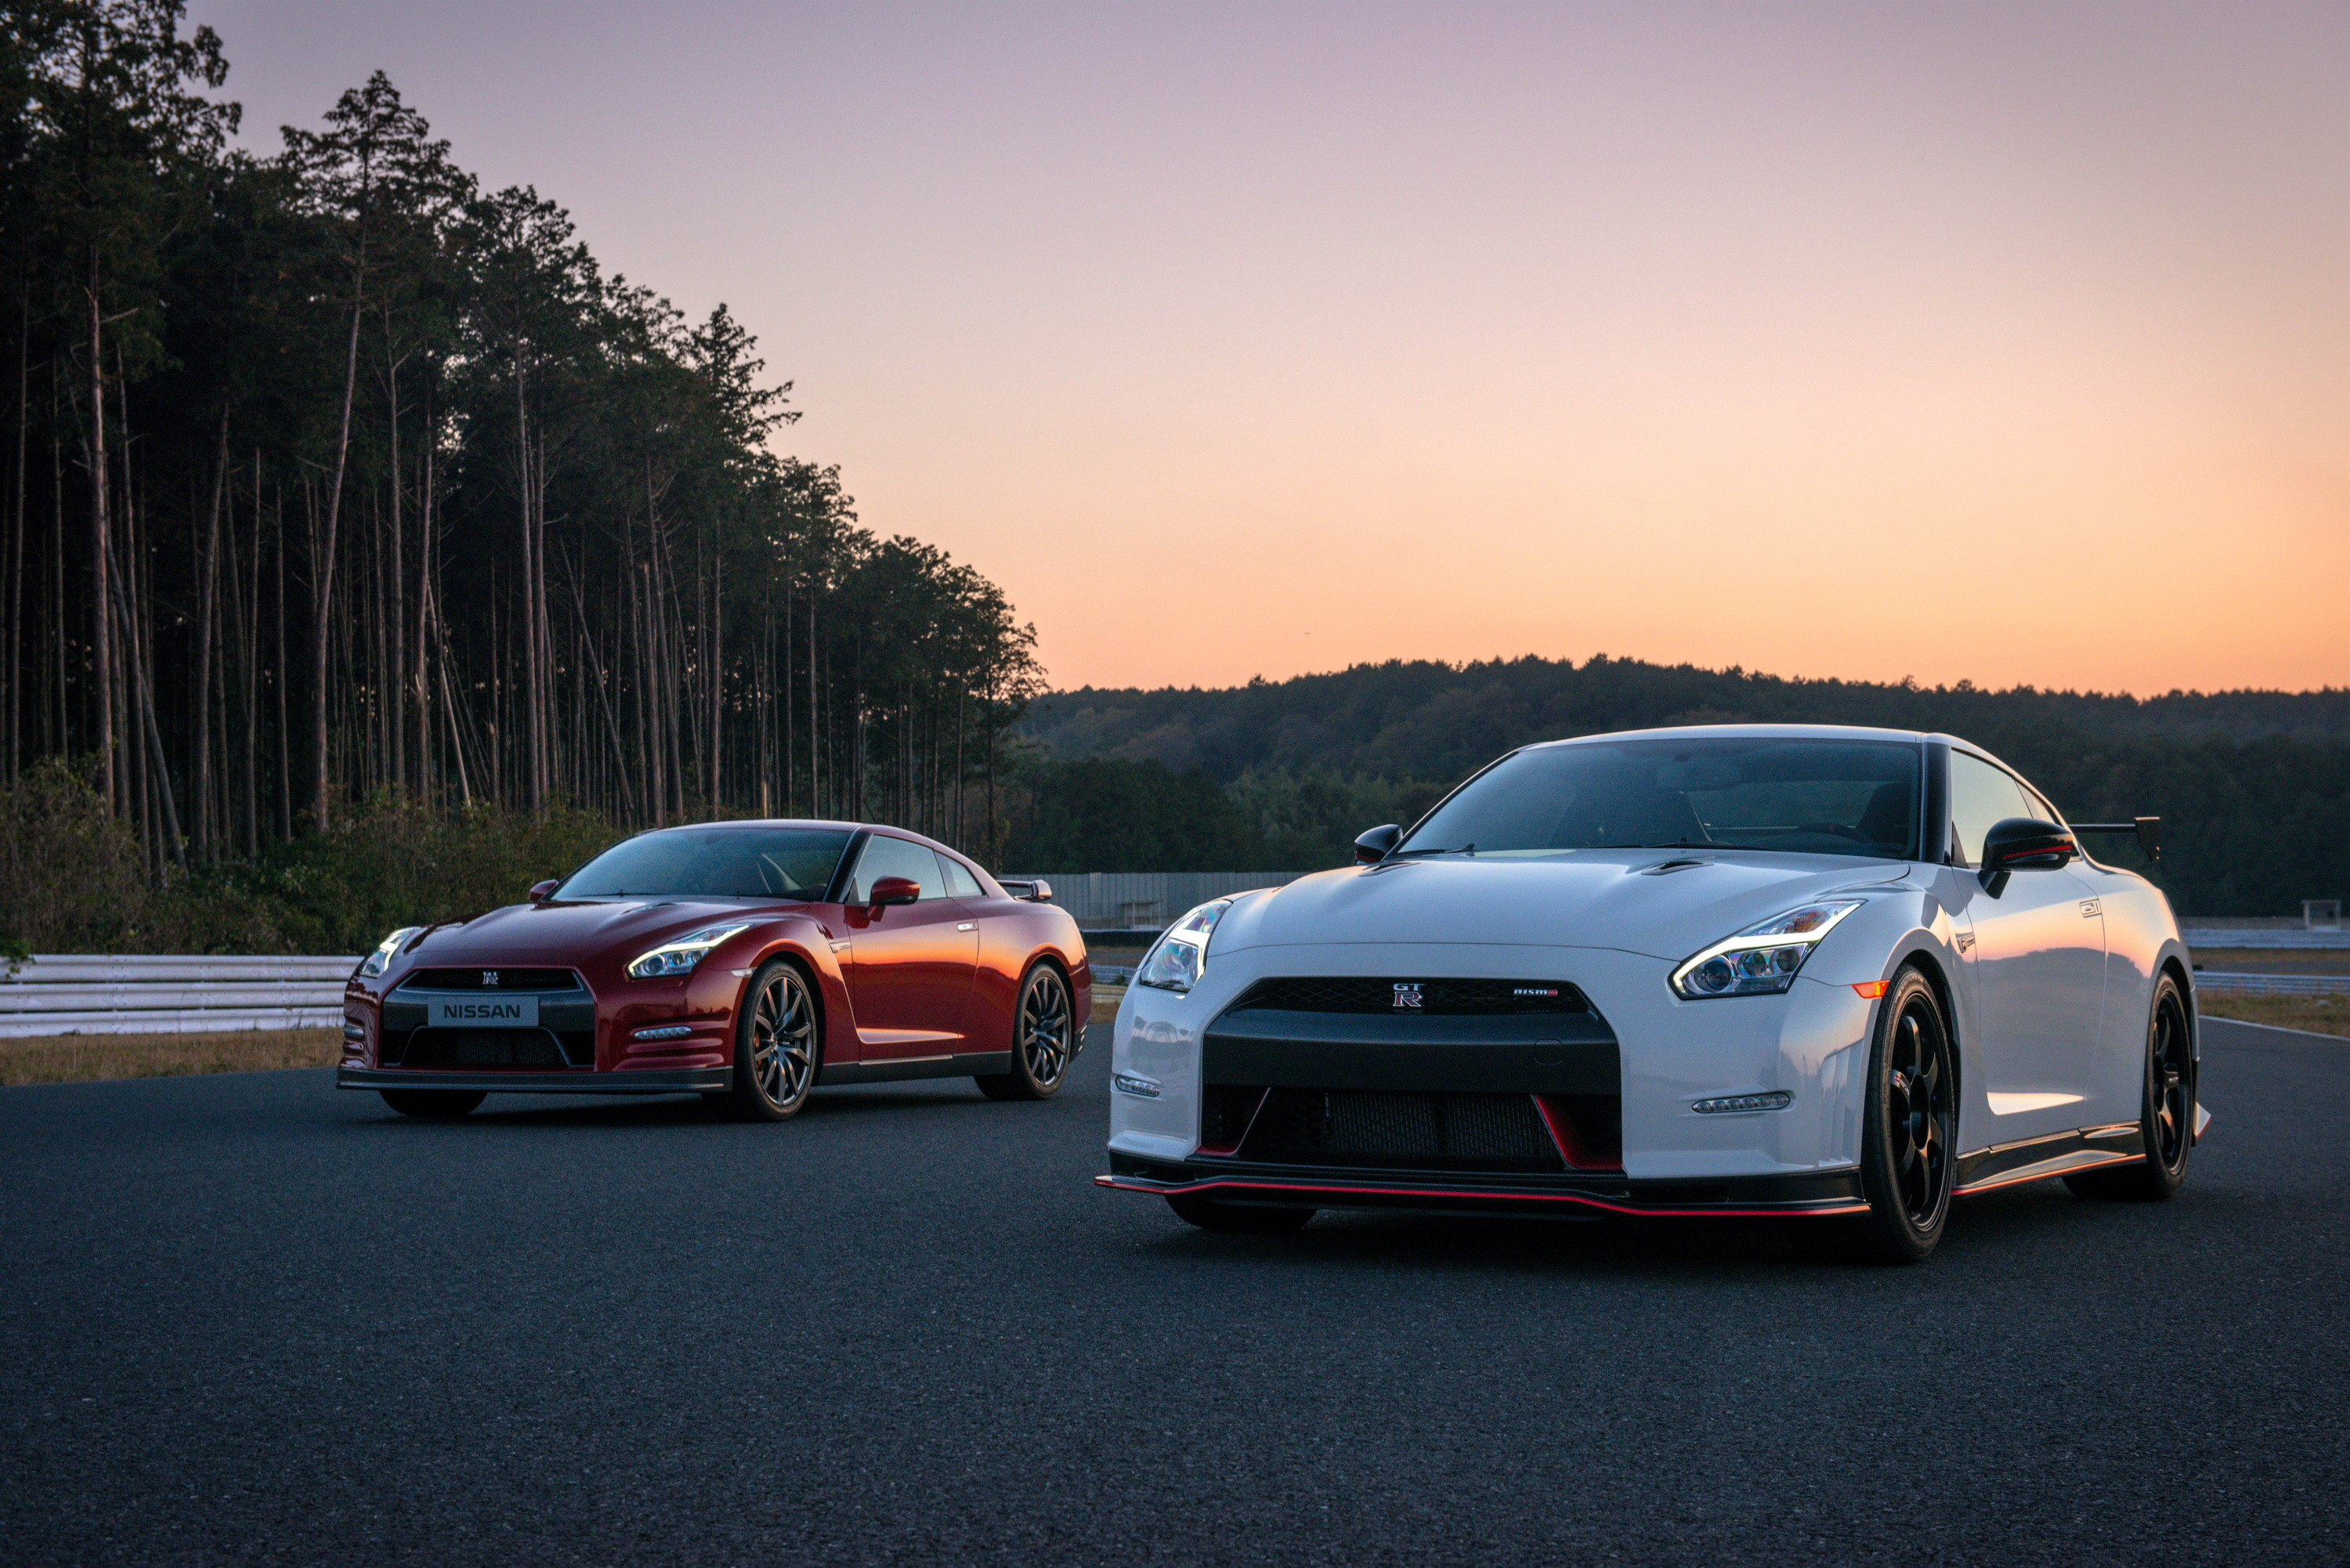 2015 nissan gt-r nismo n attack package review - top speed